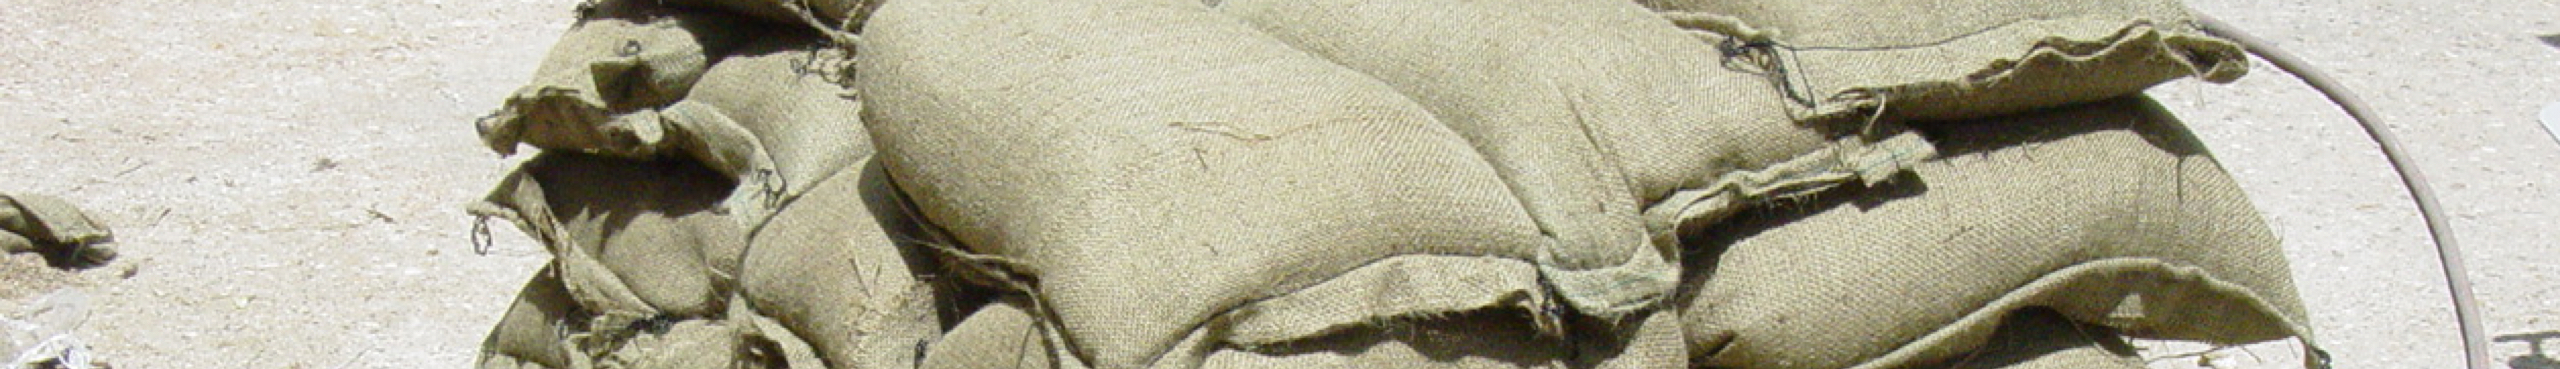 Military Specification Treated Burlap Sandbags Cover